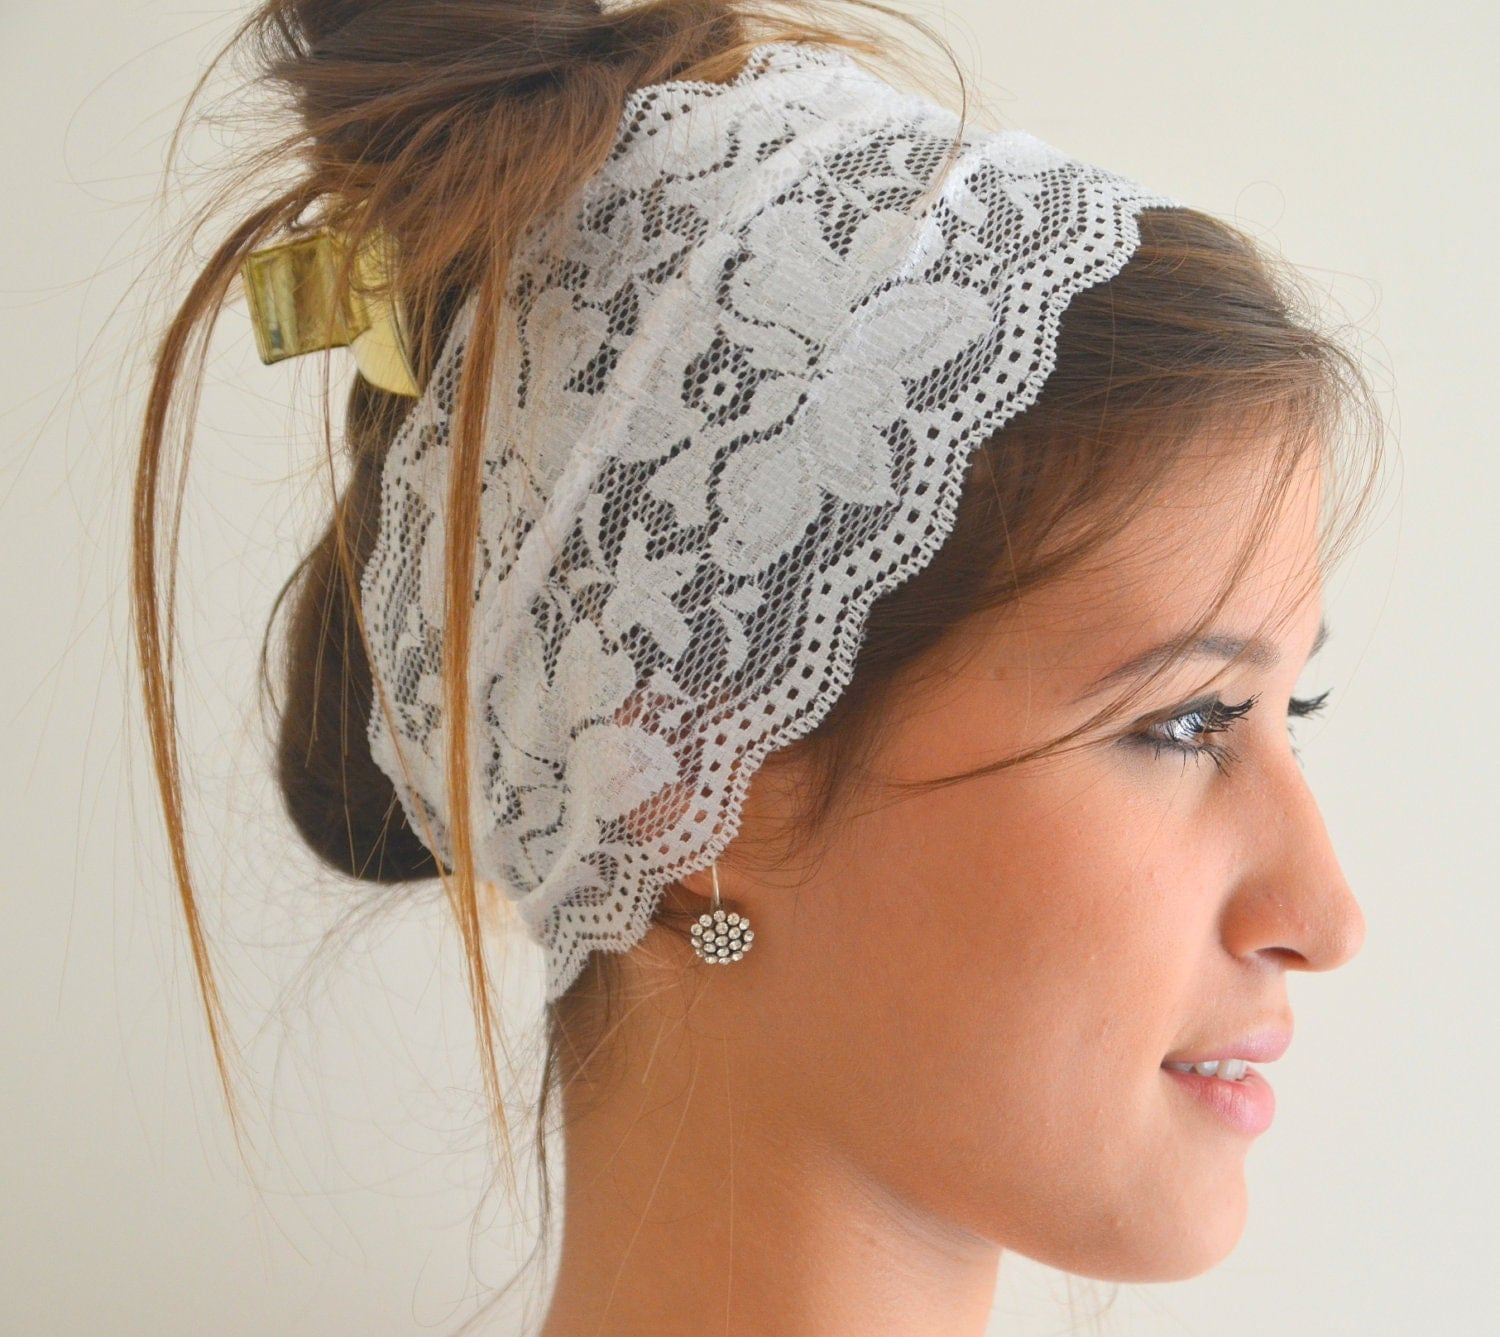 Stretchy Wedding Bands >> BS-5714 White lace headband stretchy hair band wedding by bstyle